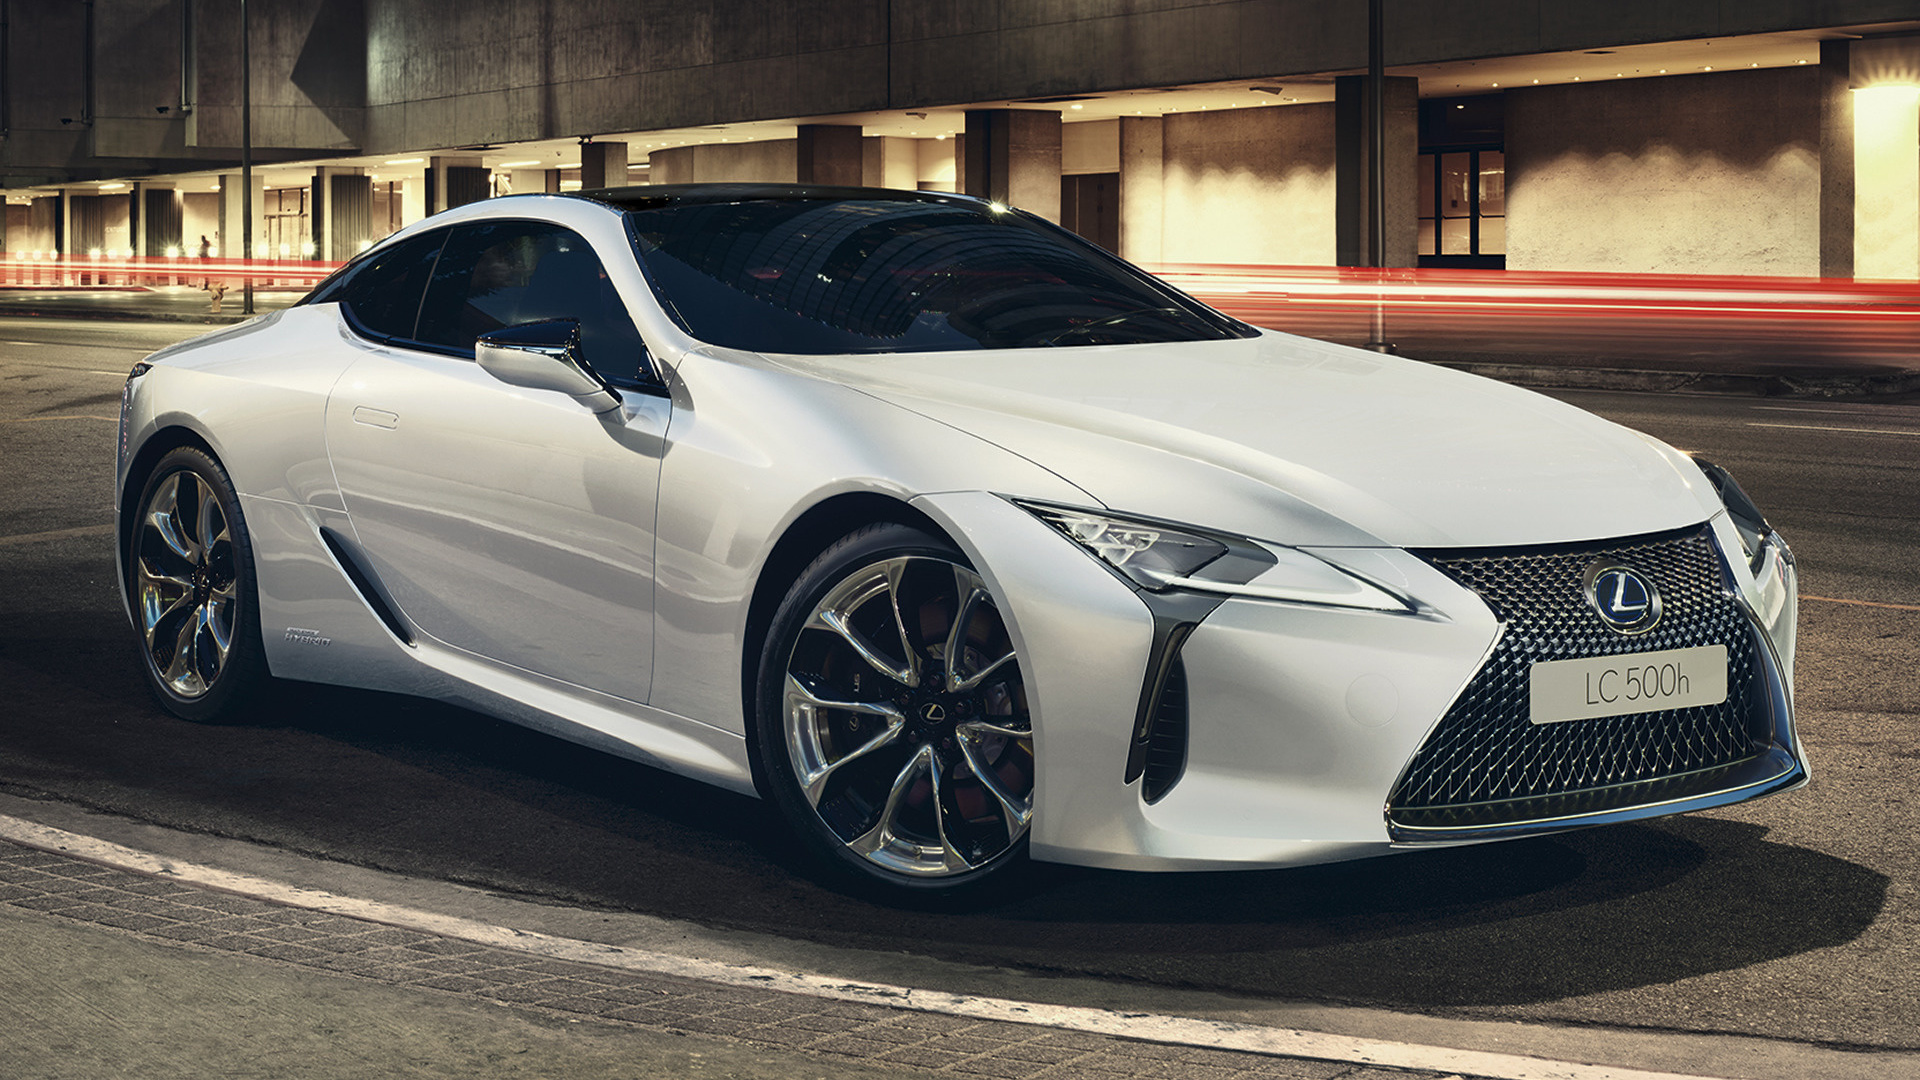 2017 Lexus LC Hybrid Launch Edition